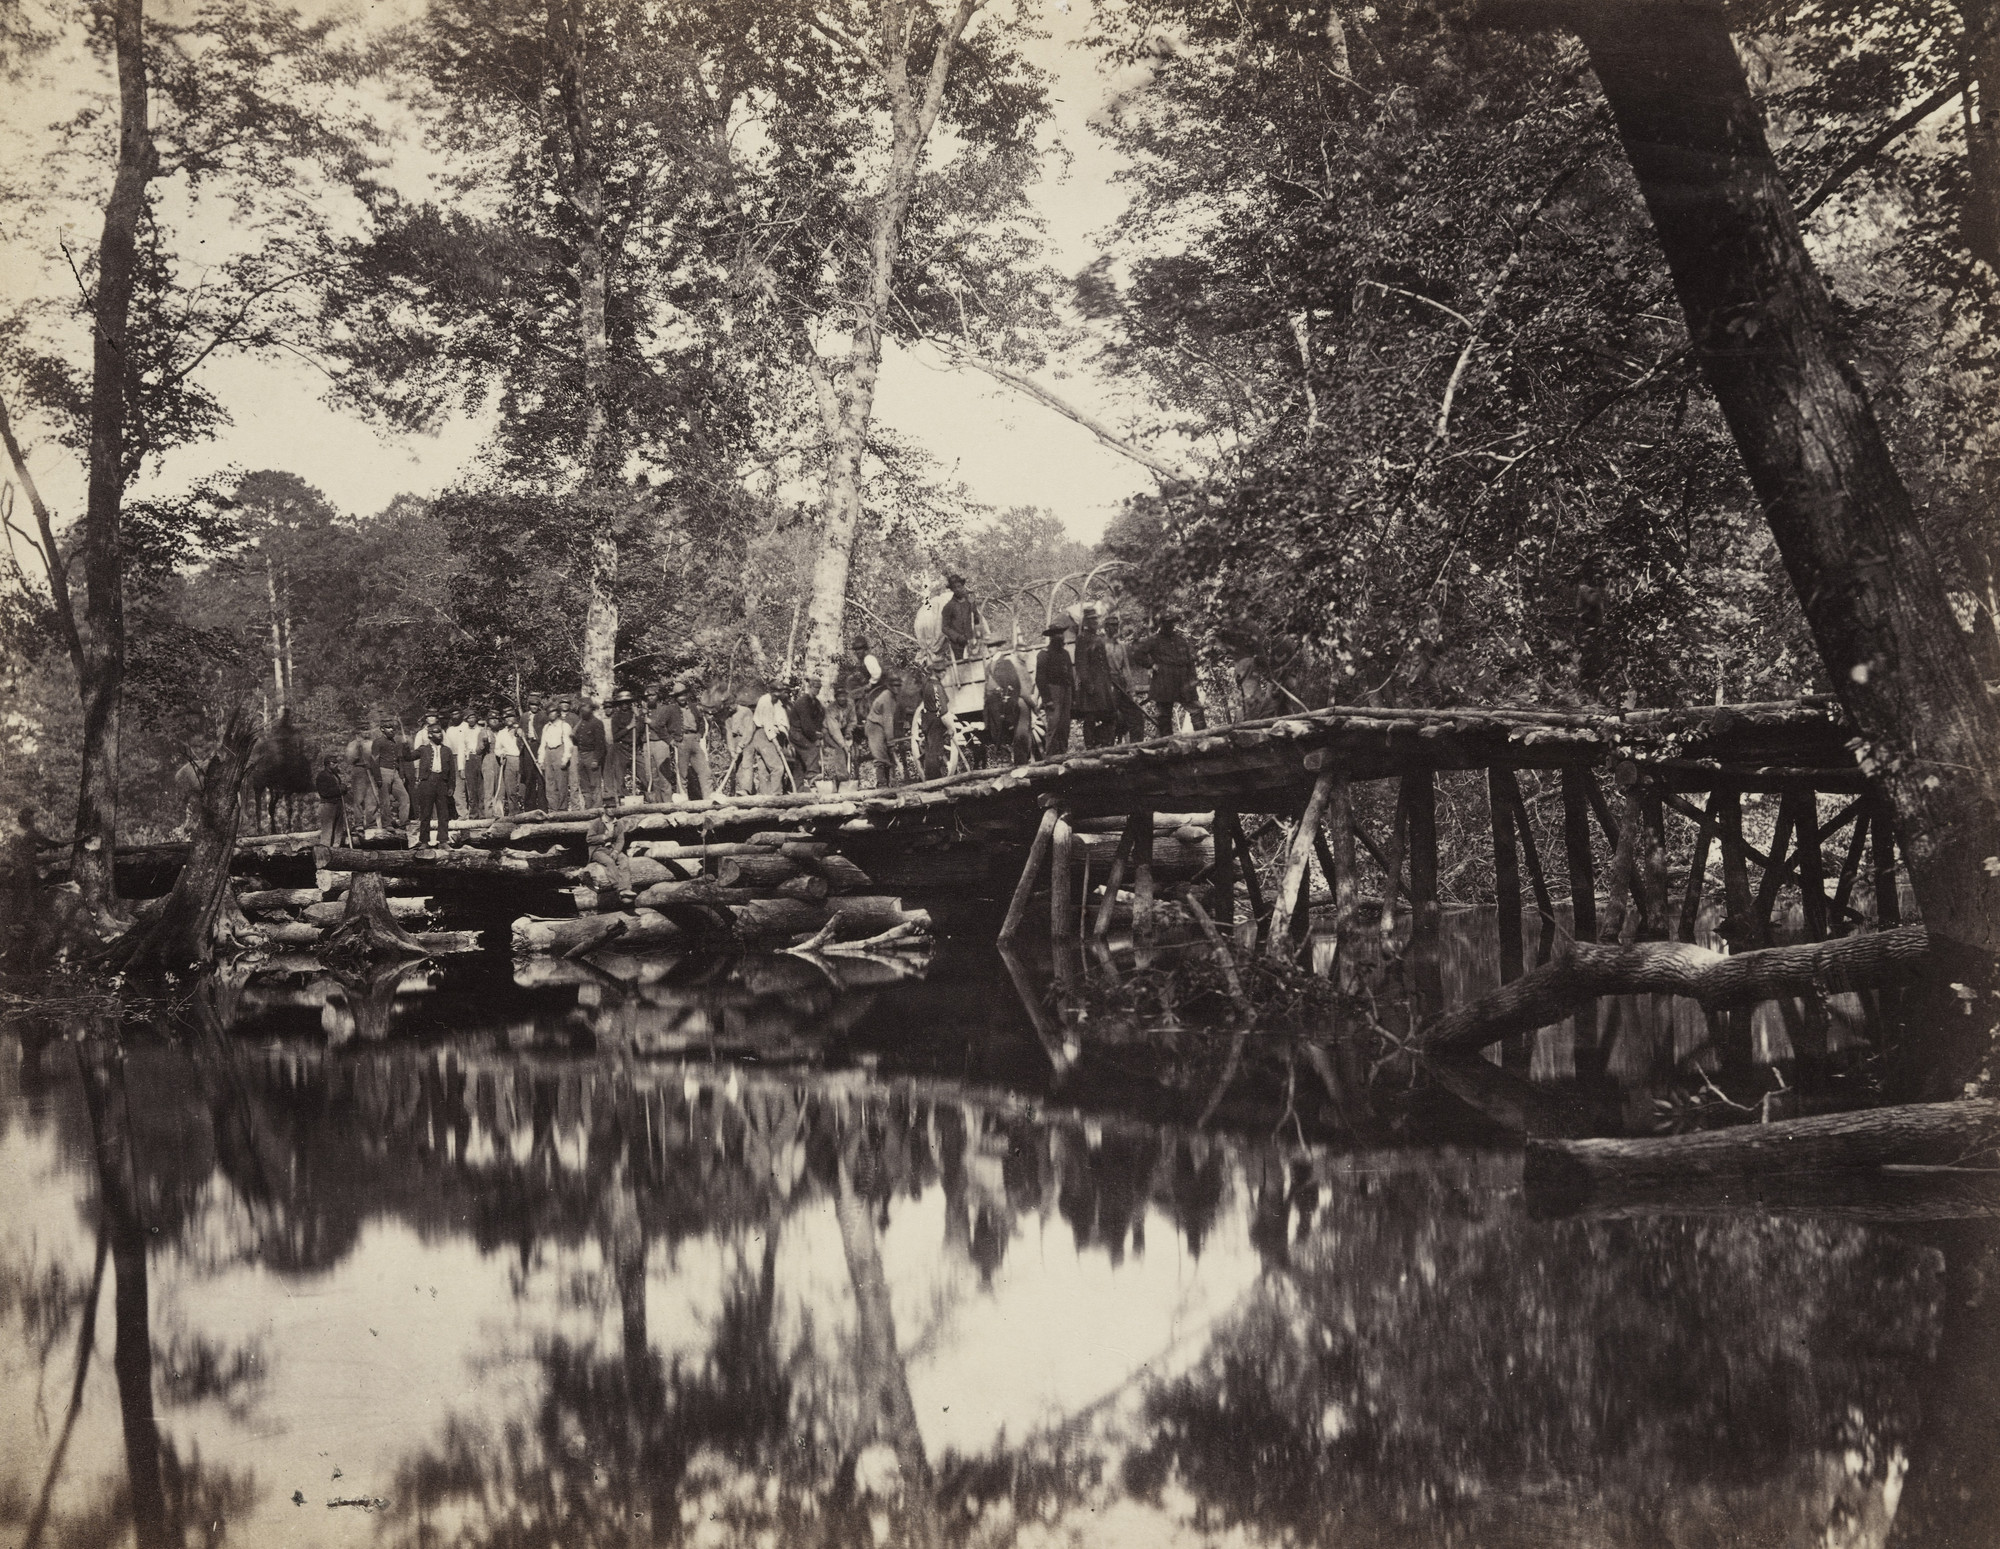 Alexander Gardner, D. B. Woodbury. Military Bridge, across the Chikahominy, Virginia. June, 1862